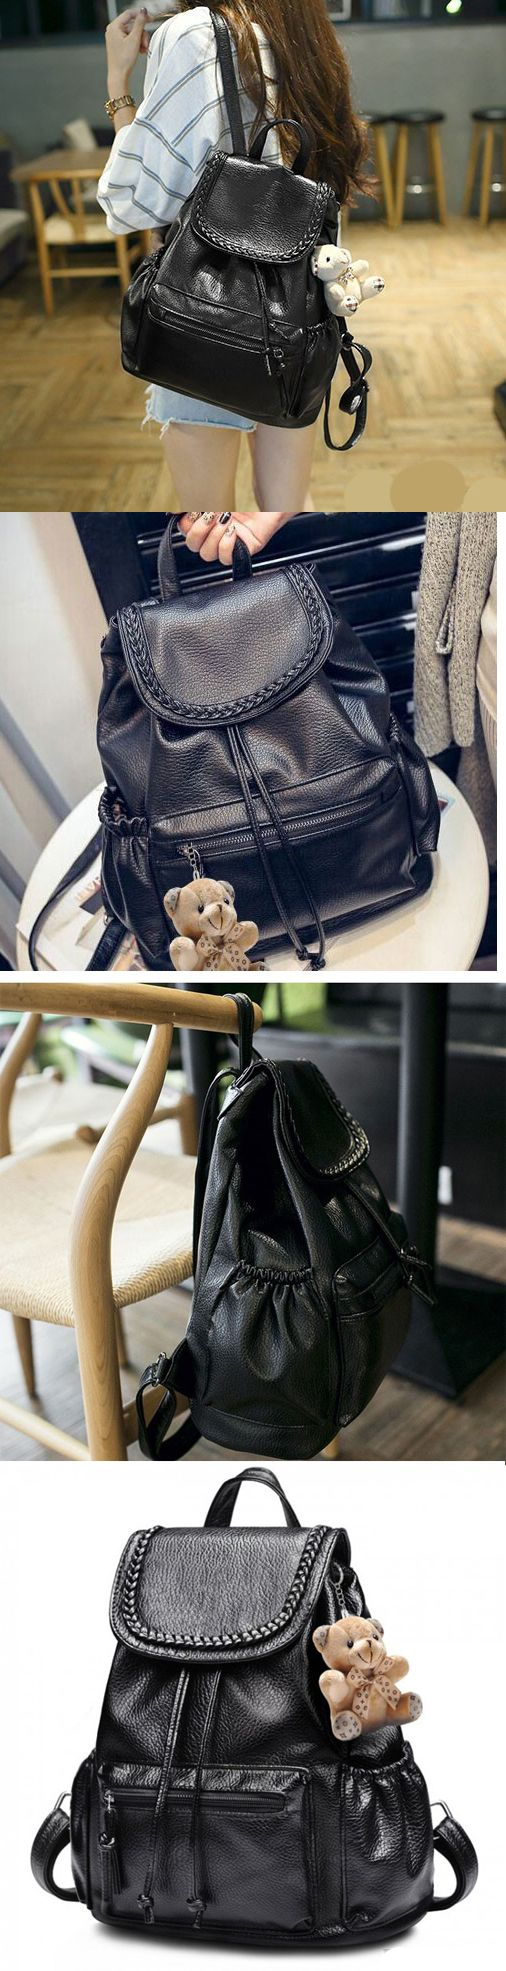 New Fashion Bear Doll Travel College Backpack Leisure Weave Black PU Rucksack backpack for women work,backpack for women travel,backpack for women fashion,backpack for women fashion style,backpack for women fashion travel,backpack for women college,backpack for college,backpack for college women,backpack for college women laptop bags,backpack for college women book bags,backpack for college women laptops,backpack for college women casual